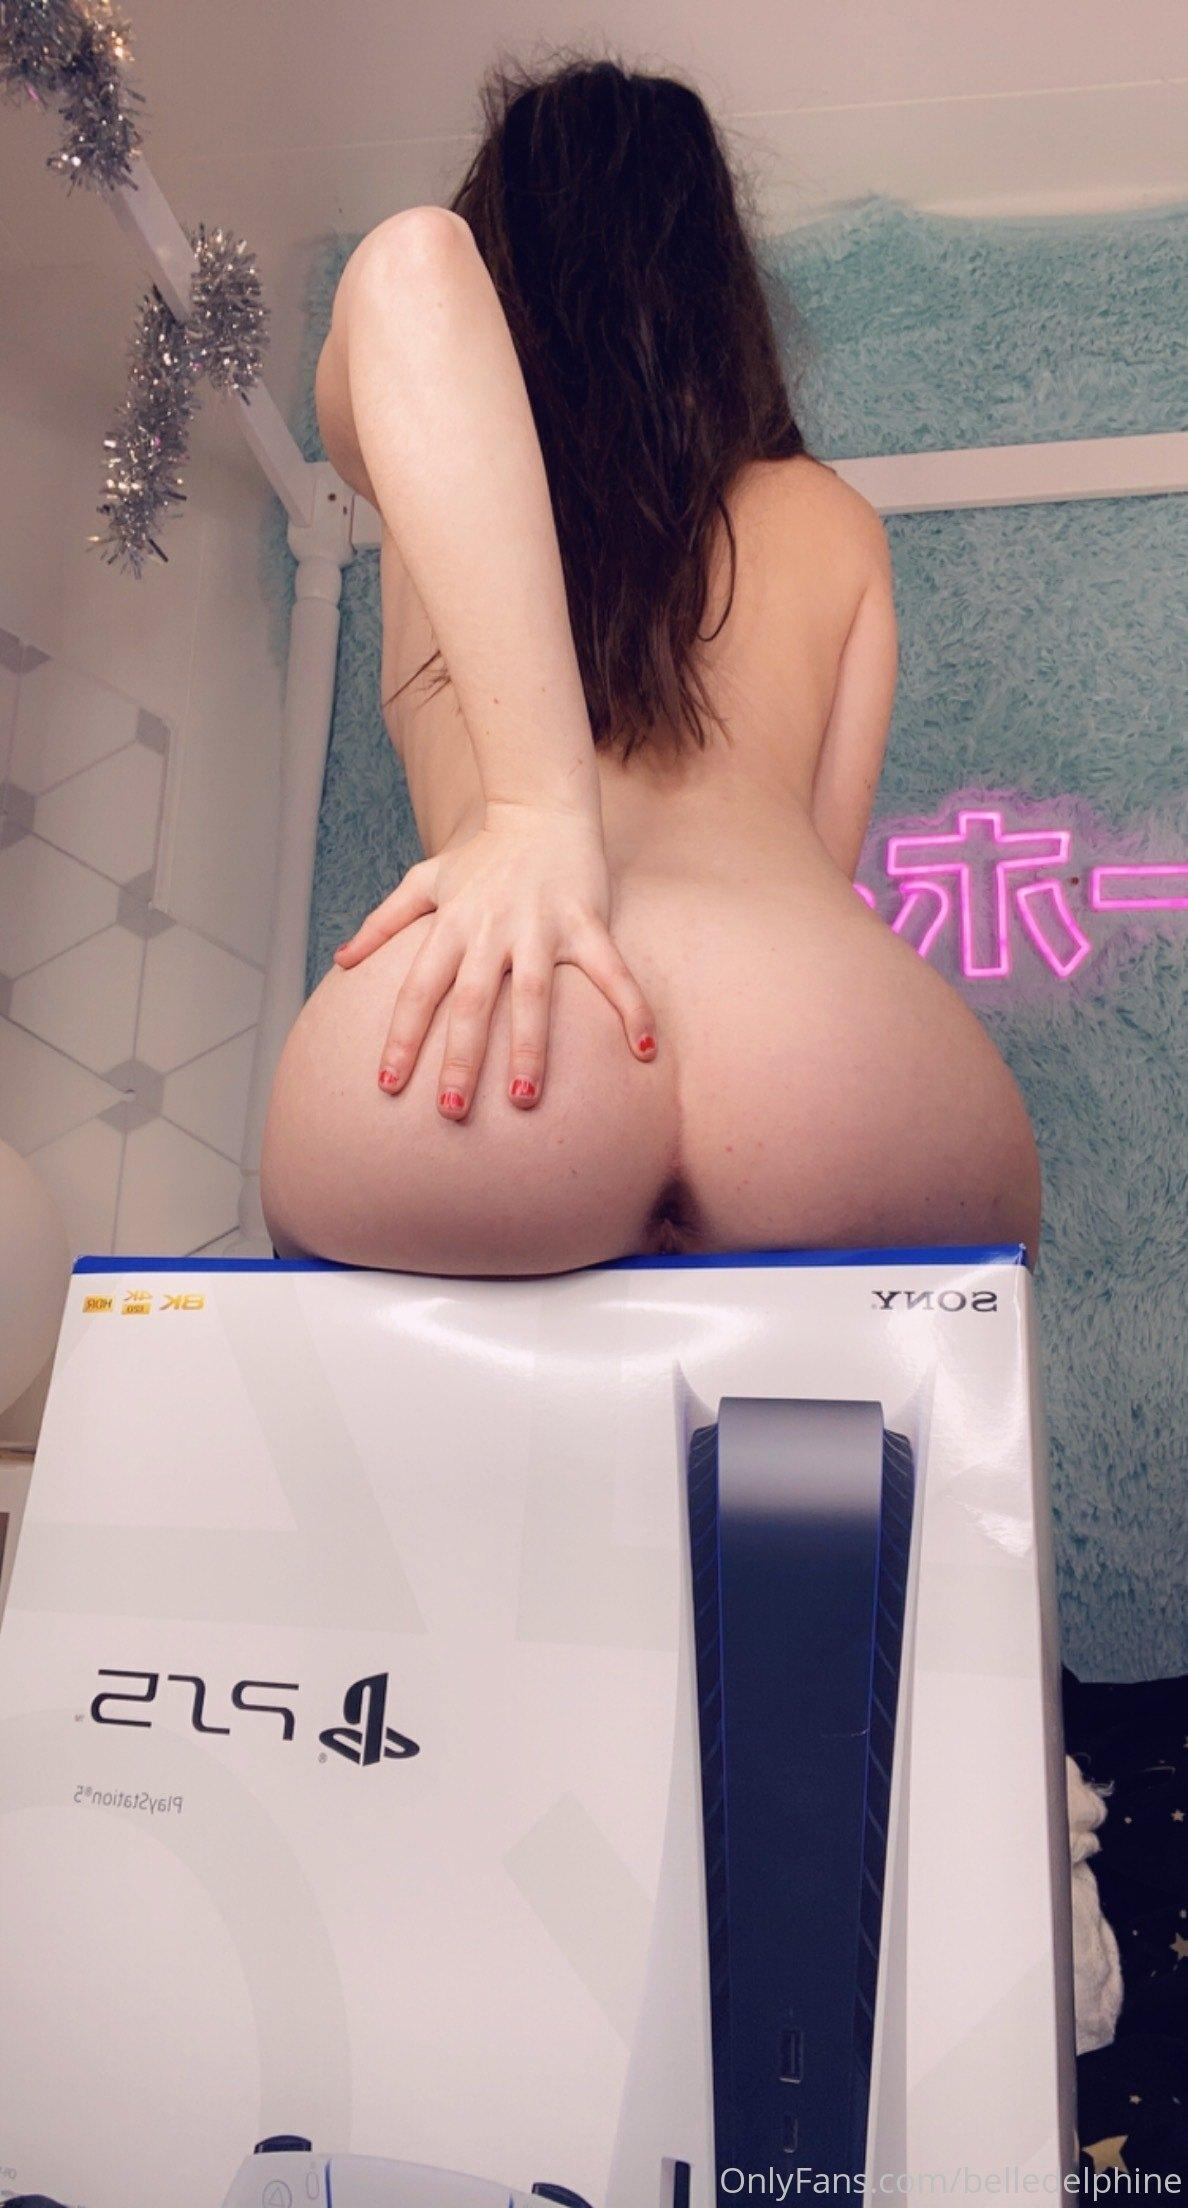 Belle Delphine Leaked Onlyfans Ps5 Nude Photos 0017